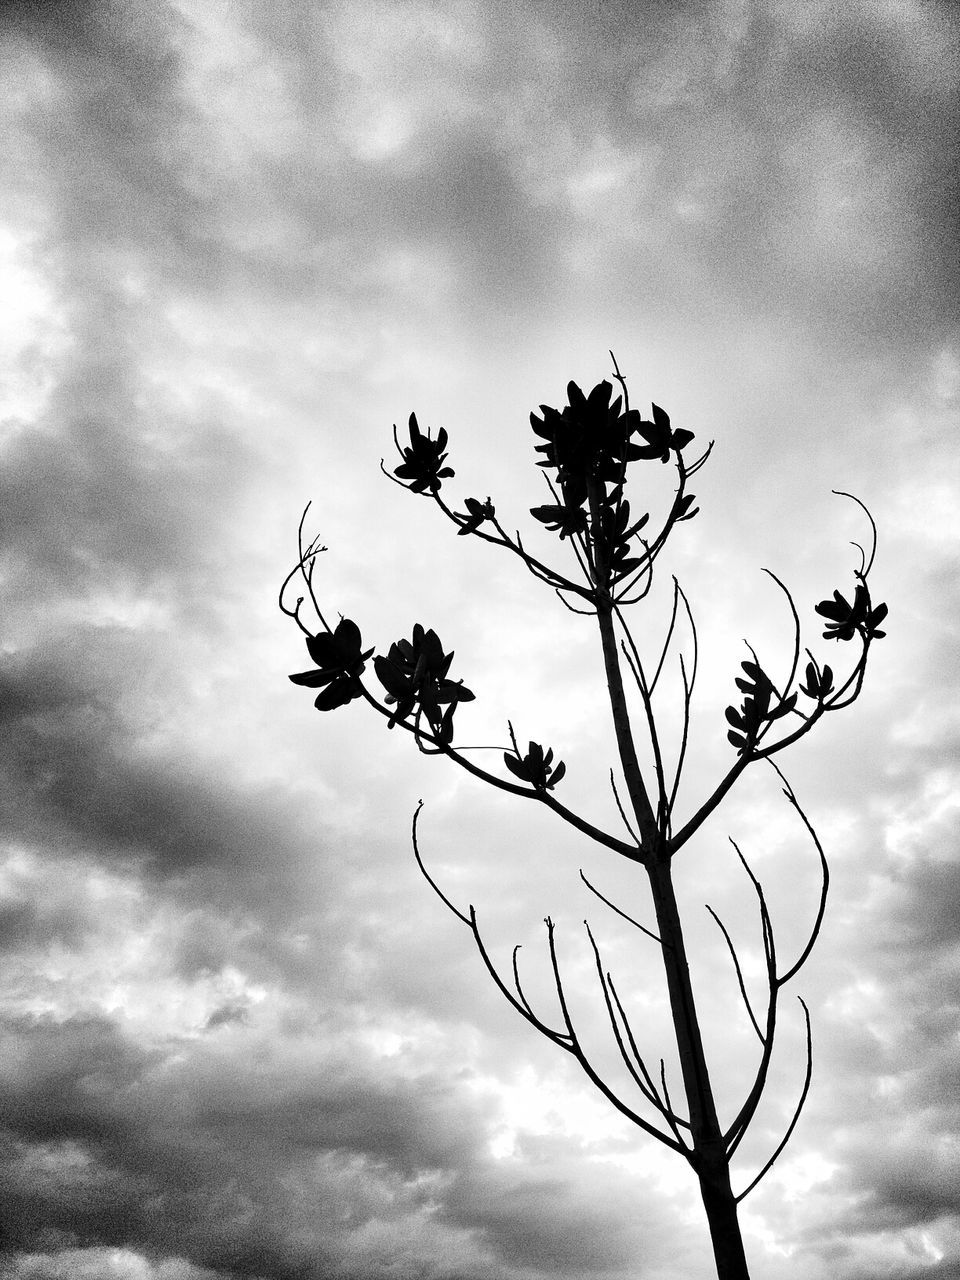 cloud - sky, sky, nature, low angle view, growth, beauty in nature, no people, flower, outdoors, day, plant, tree, fragility, freshness, close-up, flower head